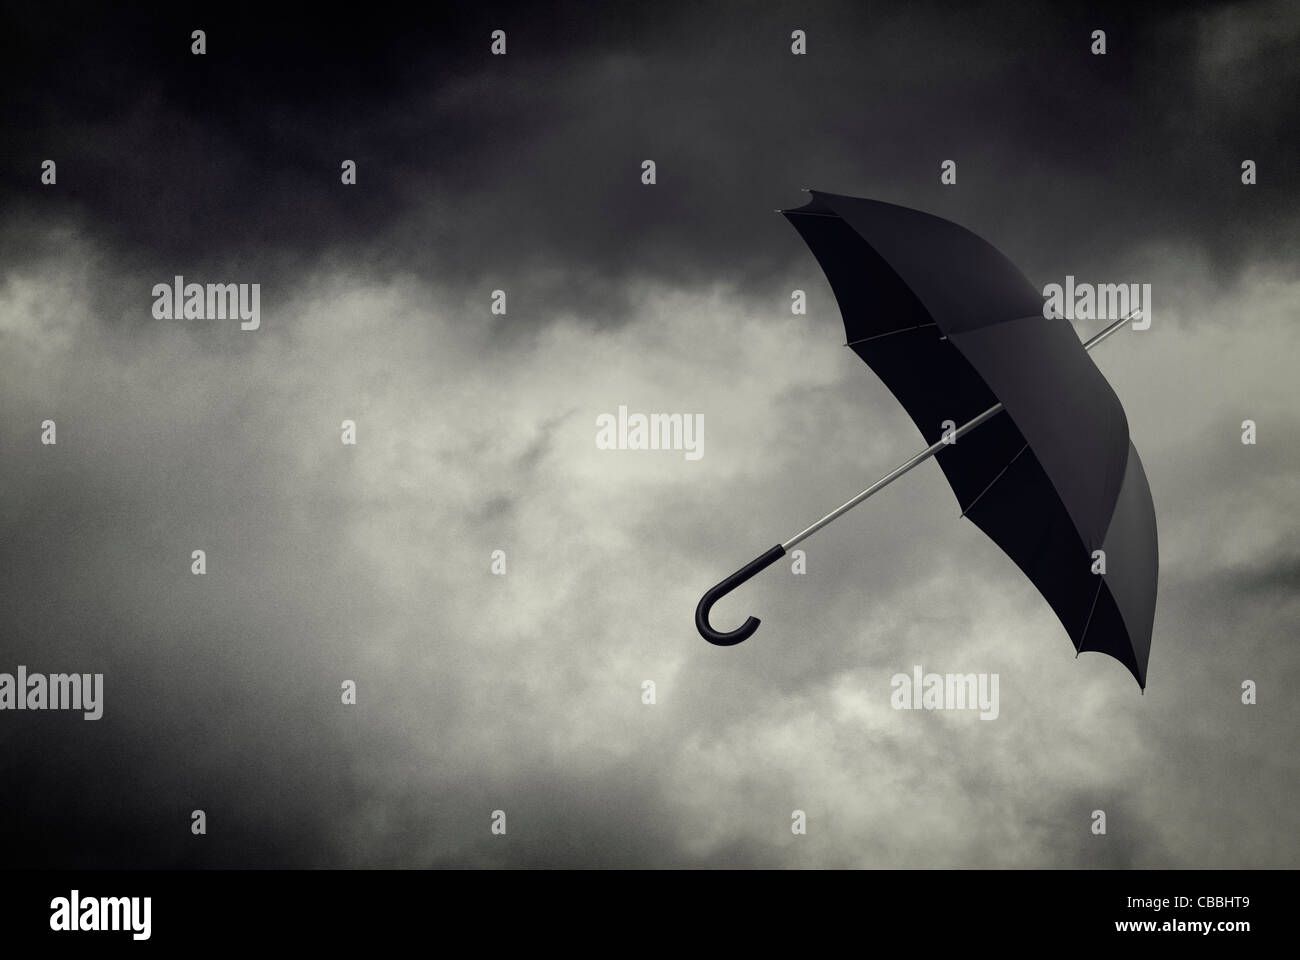 Umbrella floating in stormy sky - Stock Image